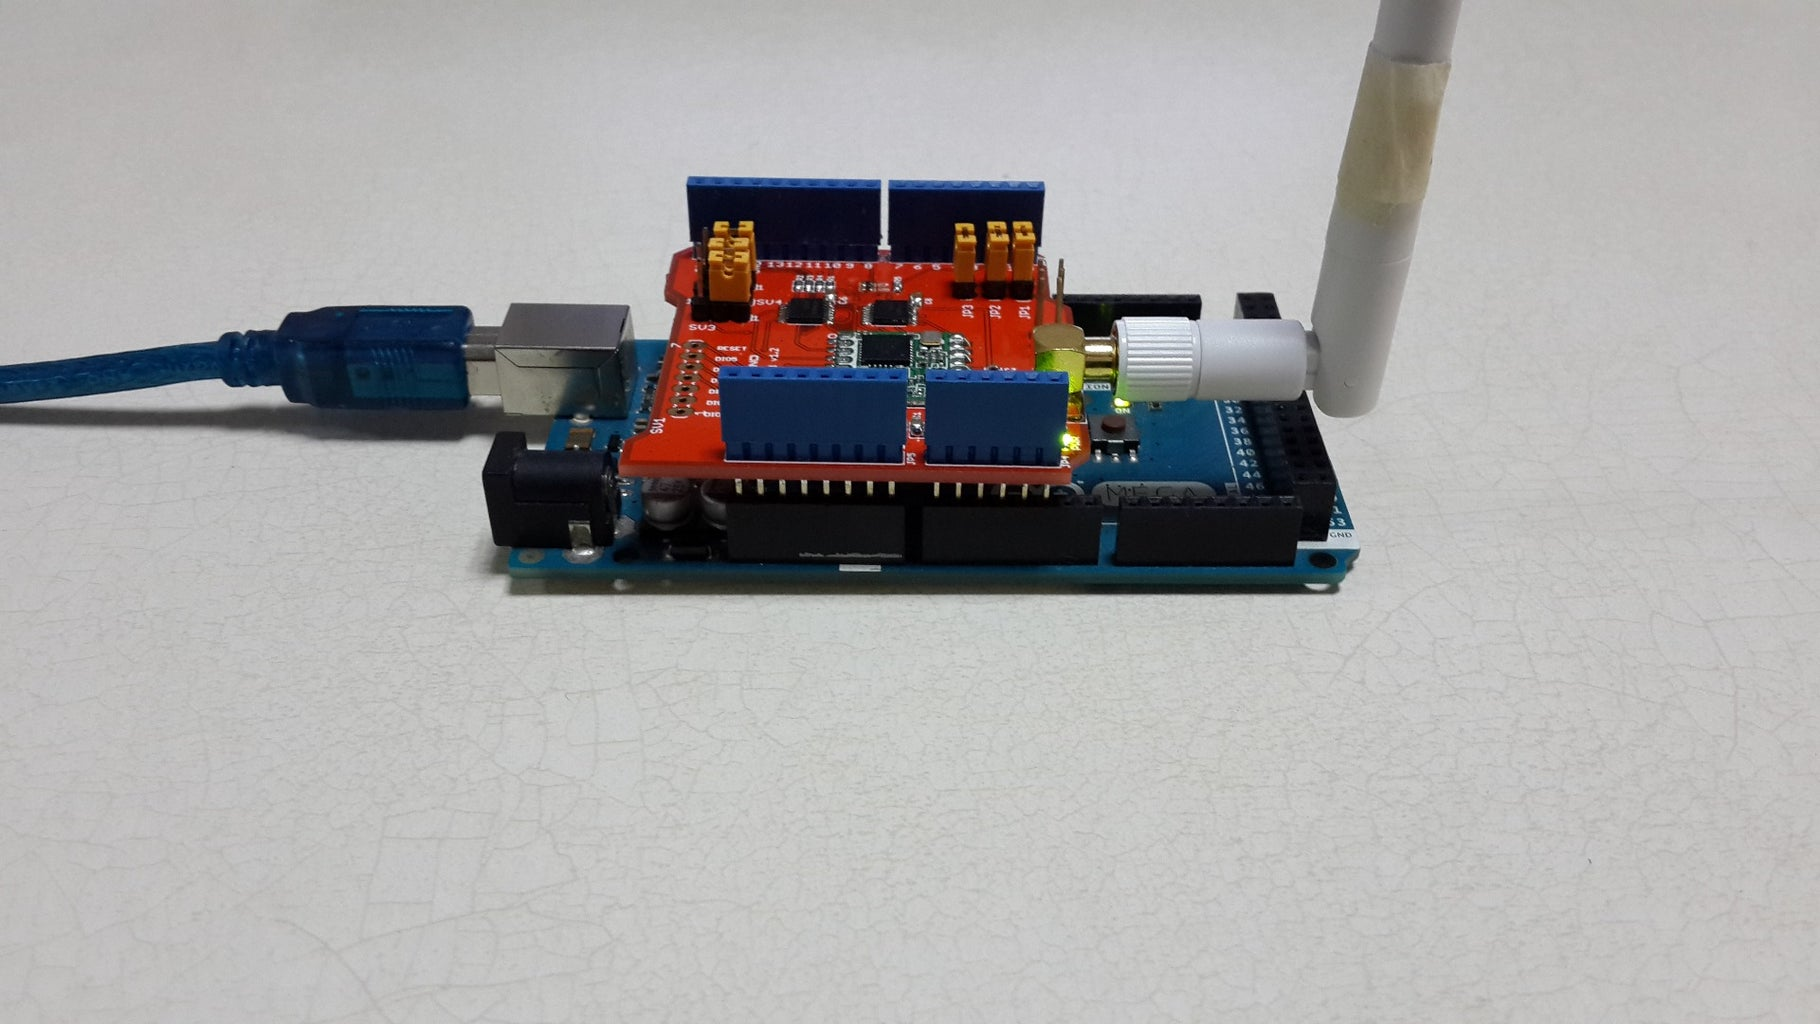 Connect the Lora Shield and MEGA 2560,upload the Sktech